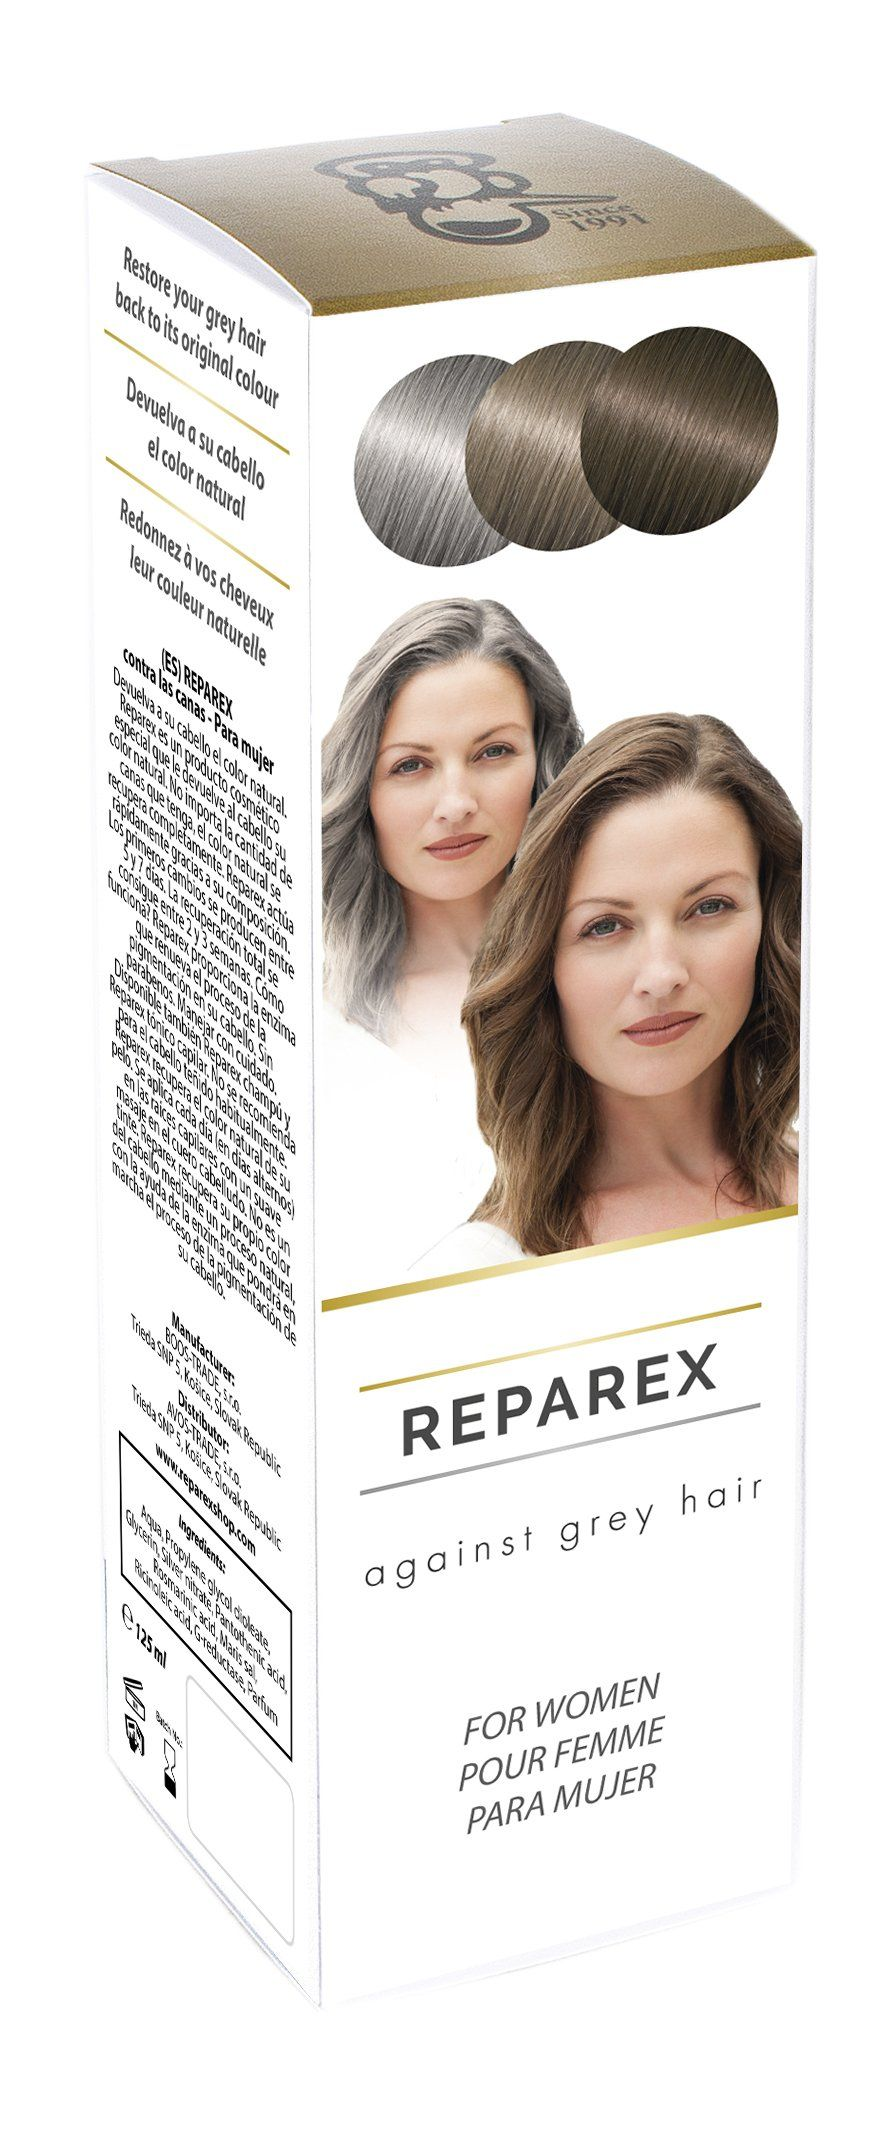 Gray Hair Treatment Formula for Women - Natural Hair Color Restoration and Hair Repair by Reparex. Get Rid of Gray Hair - Better than Hair Dye. Anti-Gray Hair Solution, Safe, Easy to Use & Apply. • Restores natural hair color without the use of dyes, wigs, chalk or any kind of cover up. • Hair color can be restored from white or grey color to your natural color in a matter of weeks and is easily applied before bed. • Reparex is used instead of hair dyes and supplements to bring back your...